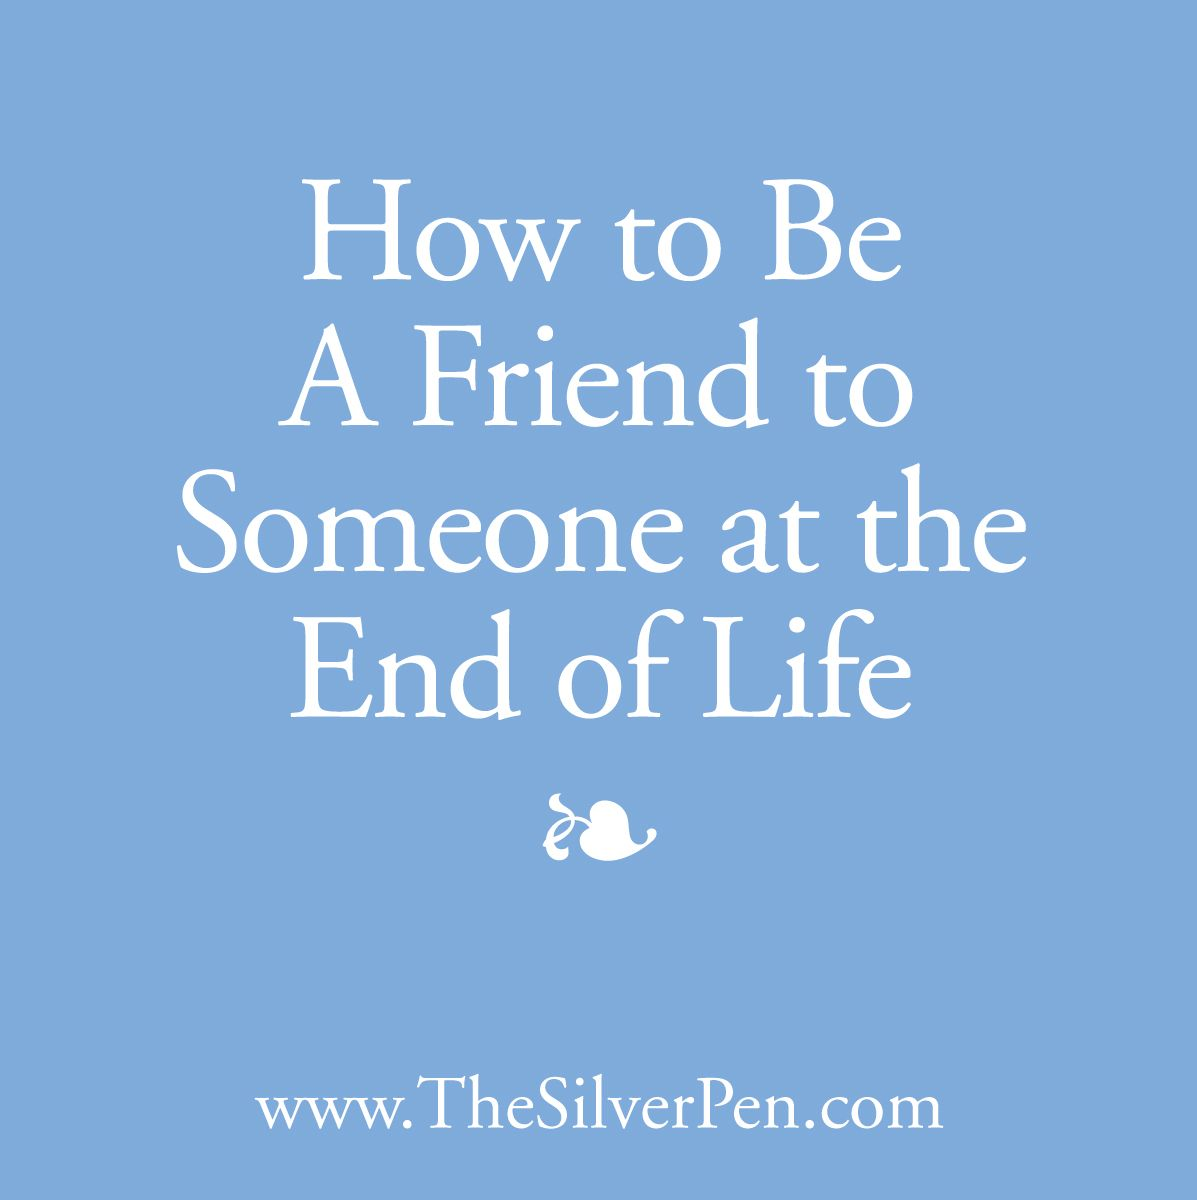 Breast Cancer Survivor Quotes How To Be A Friend  Friends My Friend.❥  Pinterest  Cancer